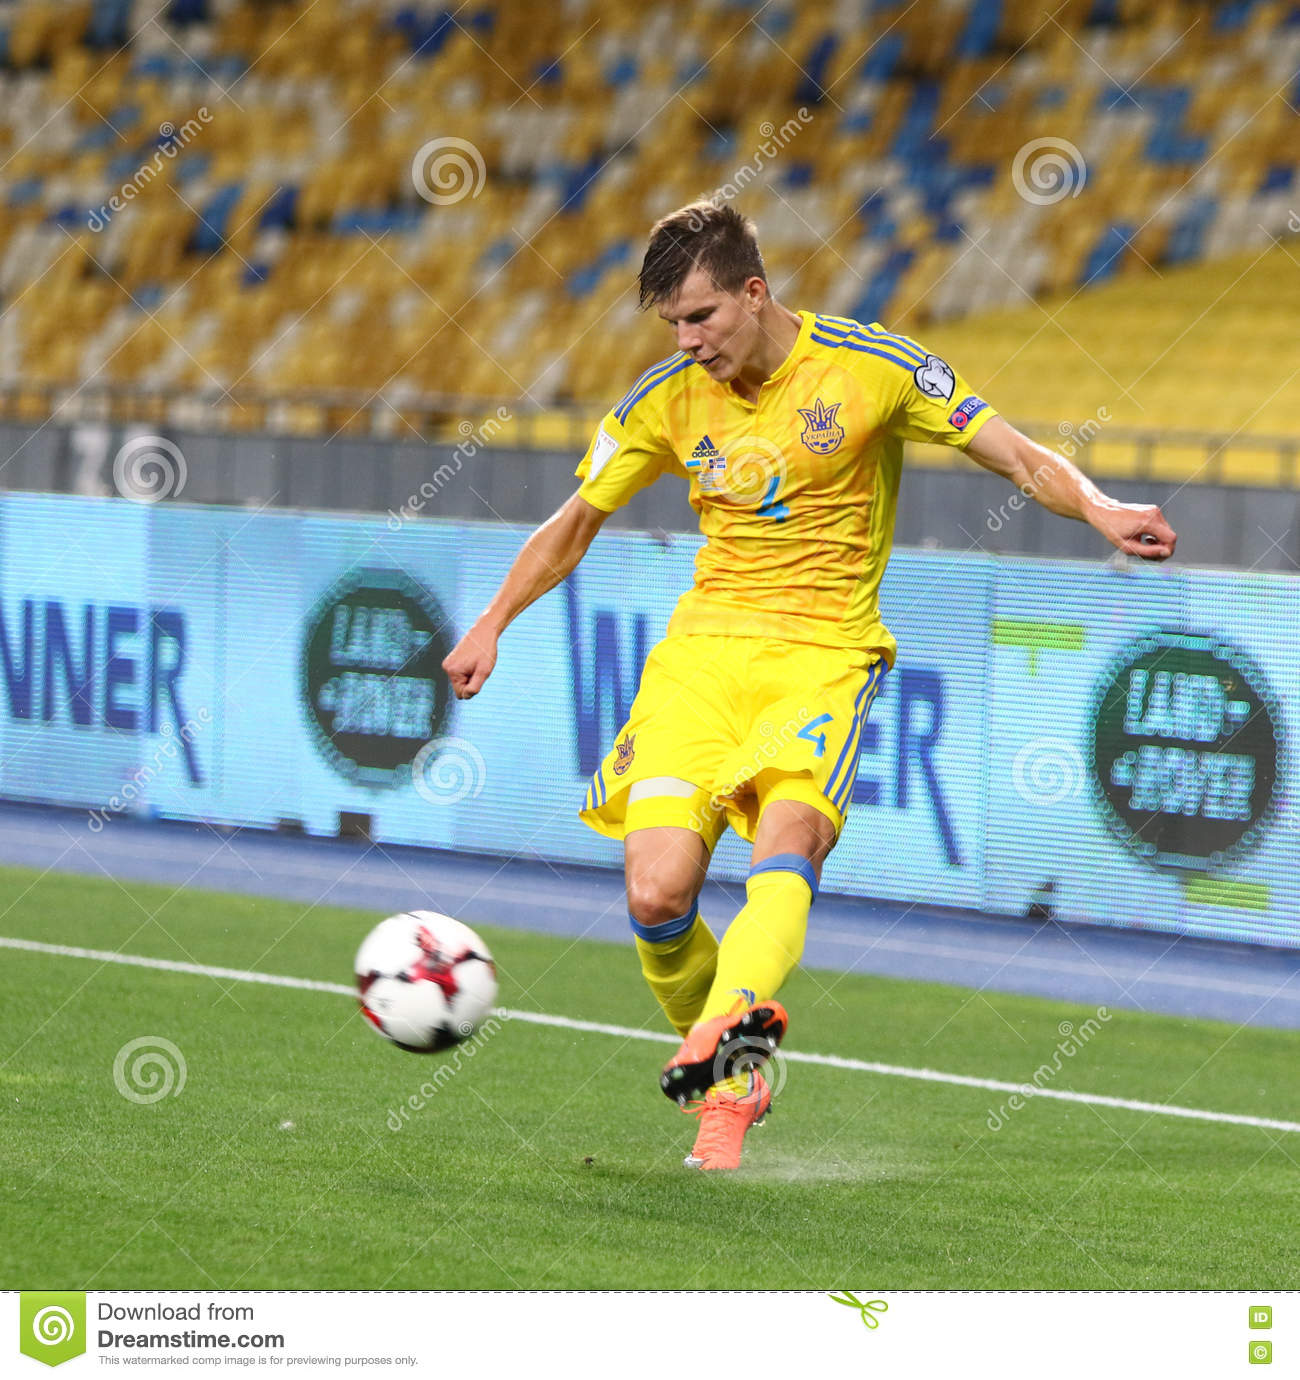 Cool Fifa World Cup 2018 - fifa-world-cup-qualifying-game-ukraine-v-iceland-kyiv-september-eduard-sobol-kicks-ball-against-nsc-olympic-77102997  Snapshot_907360 .jpg